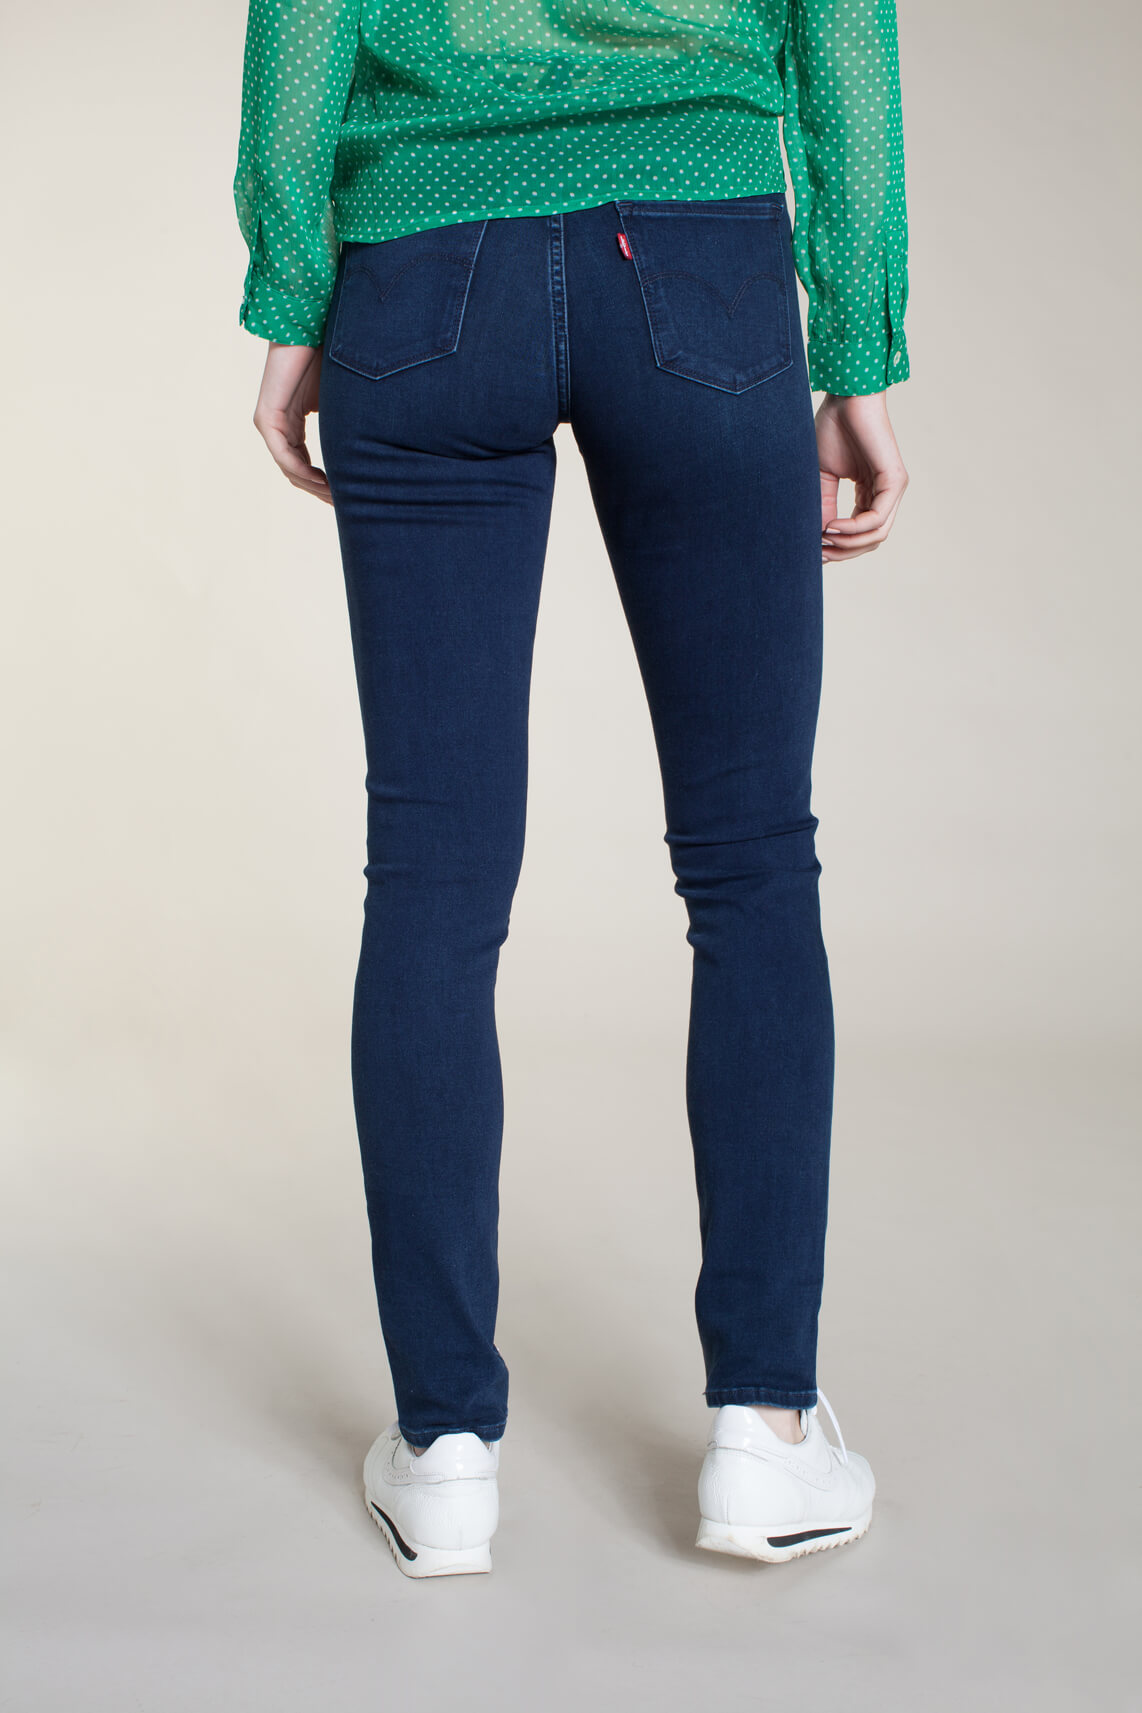 Levi s Dames 311 L30 shaping skinny jeans Blauw